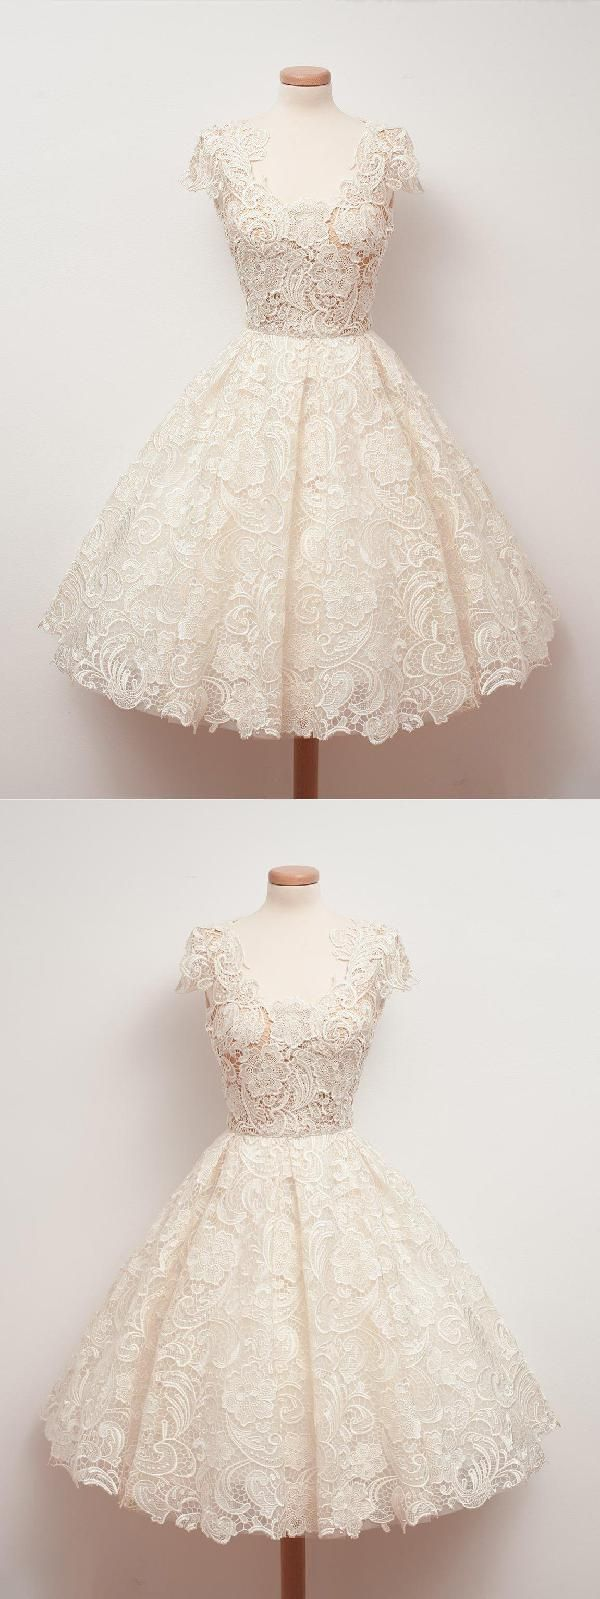 Homecoming dresses lace homecomingdresseslace ivory homecoming